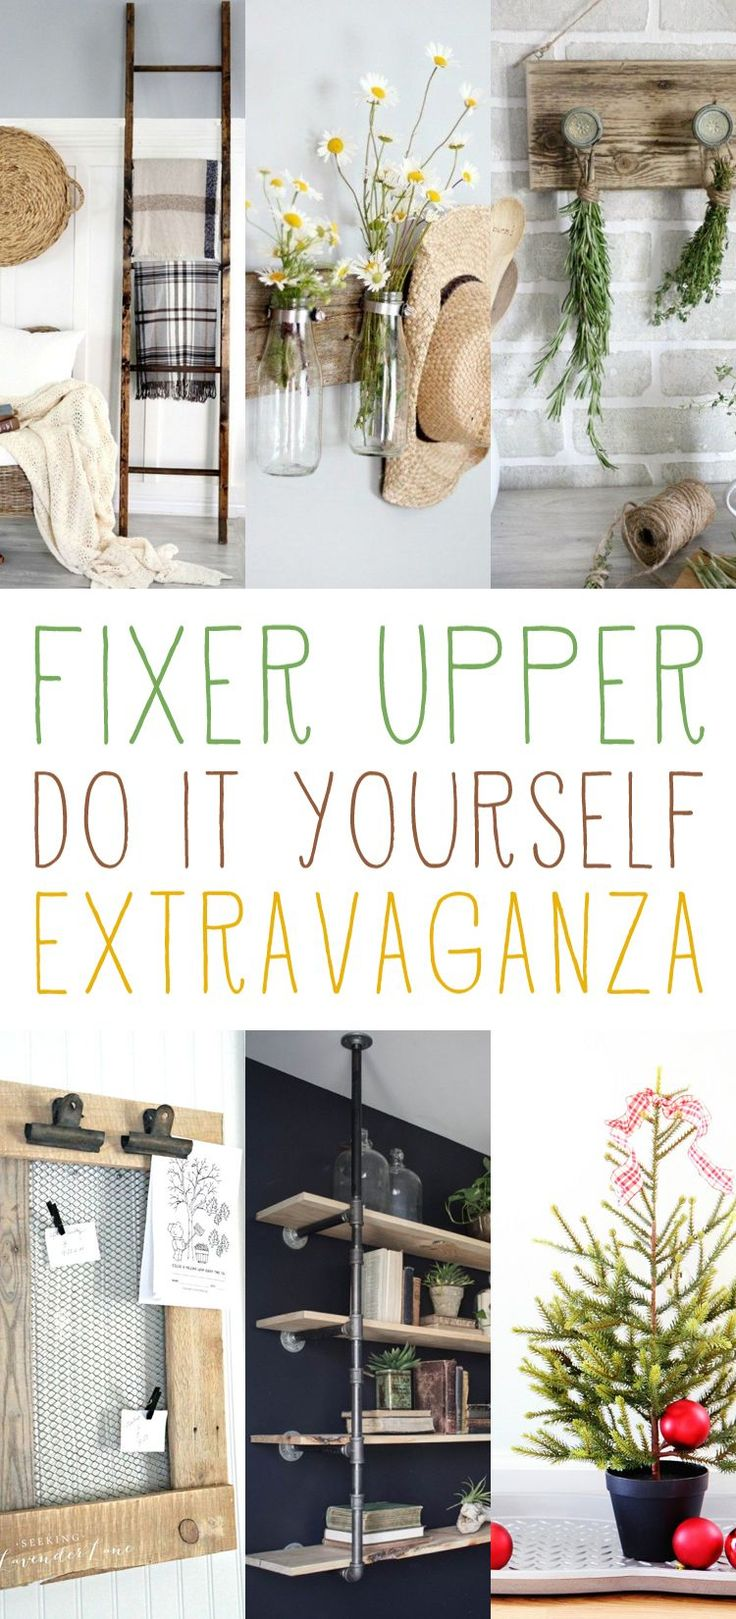 Fixer Upper DIY Extravaganza - The Cottage Market